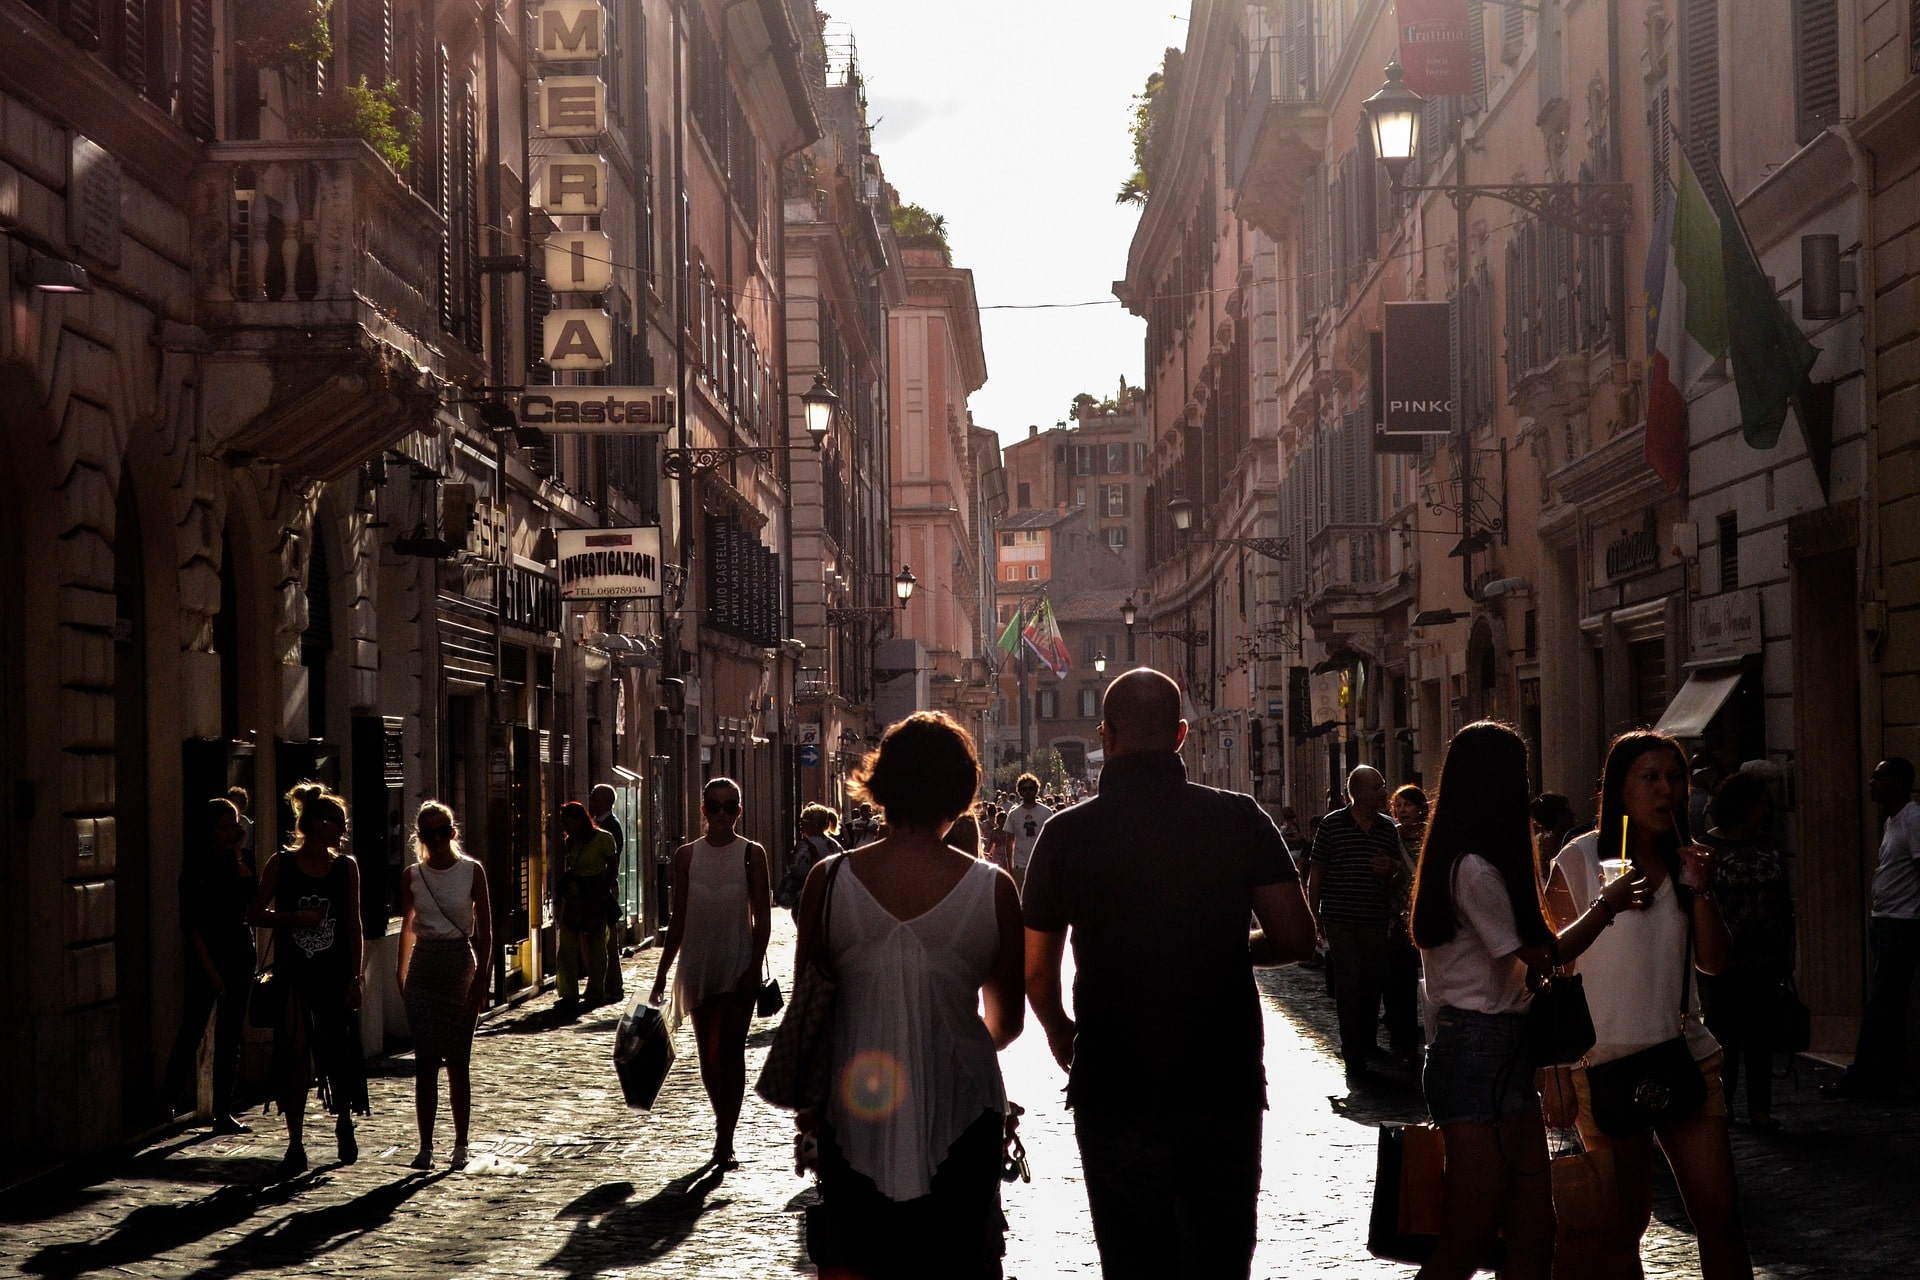 Where to stay in Italy if you want to do EVERYTHING? Naples!